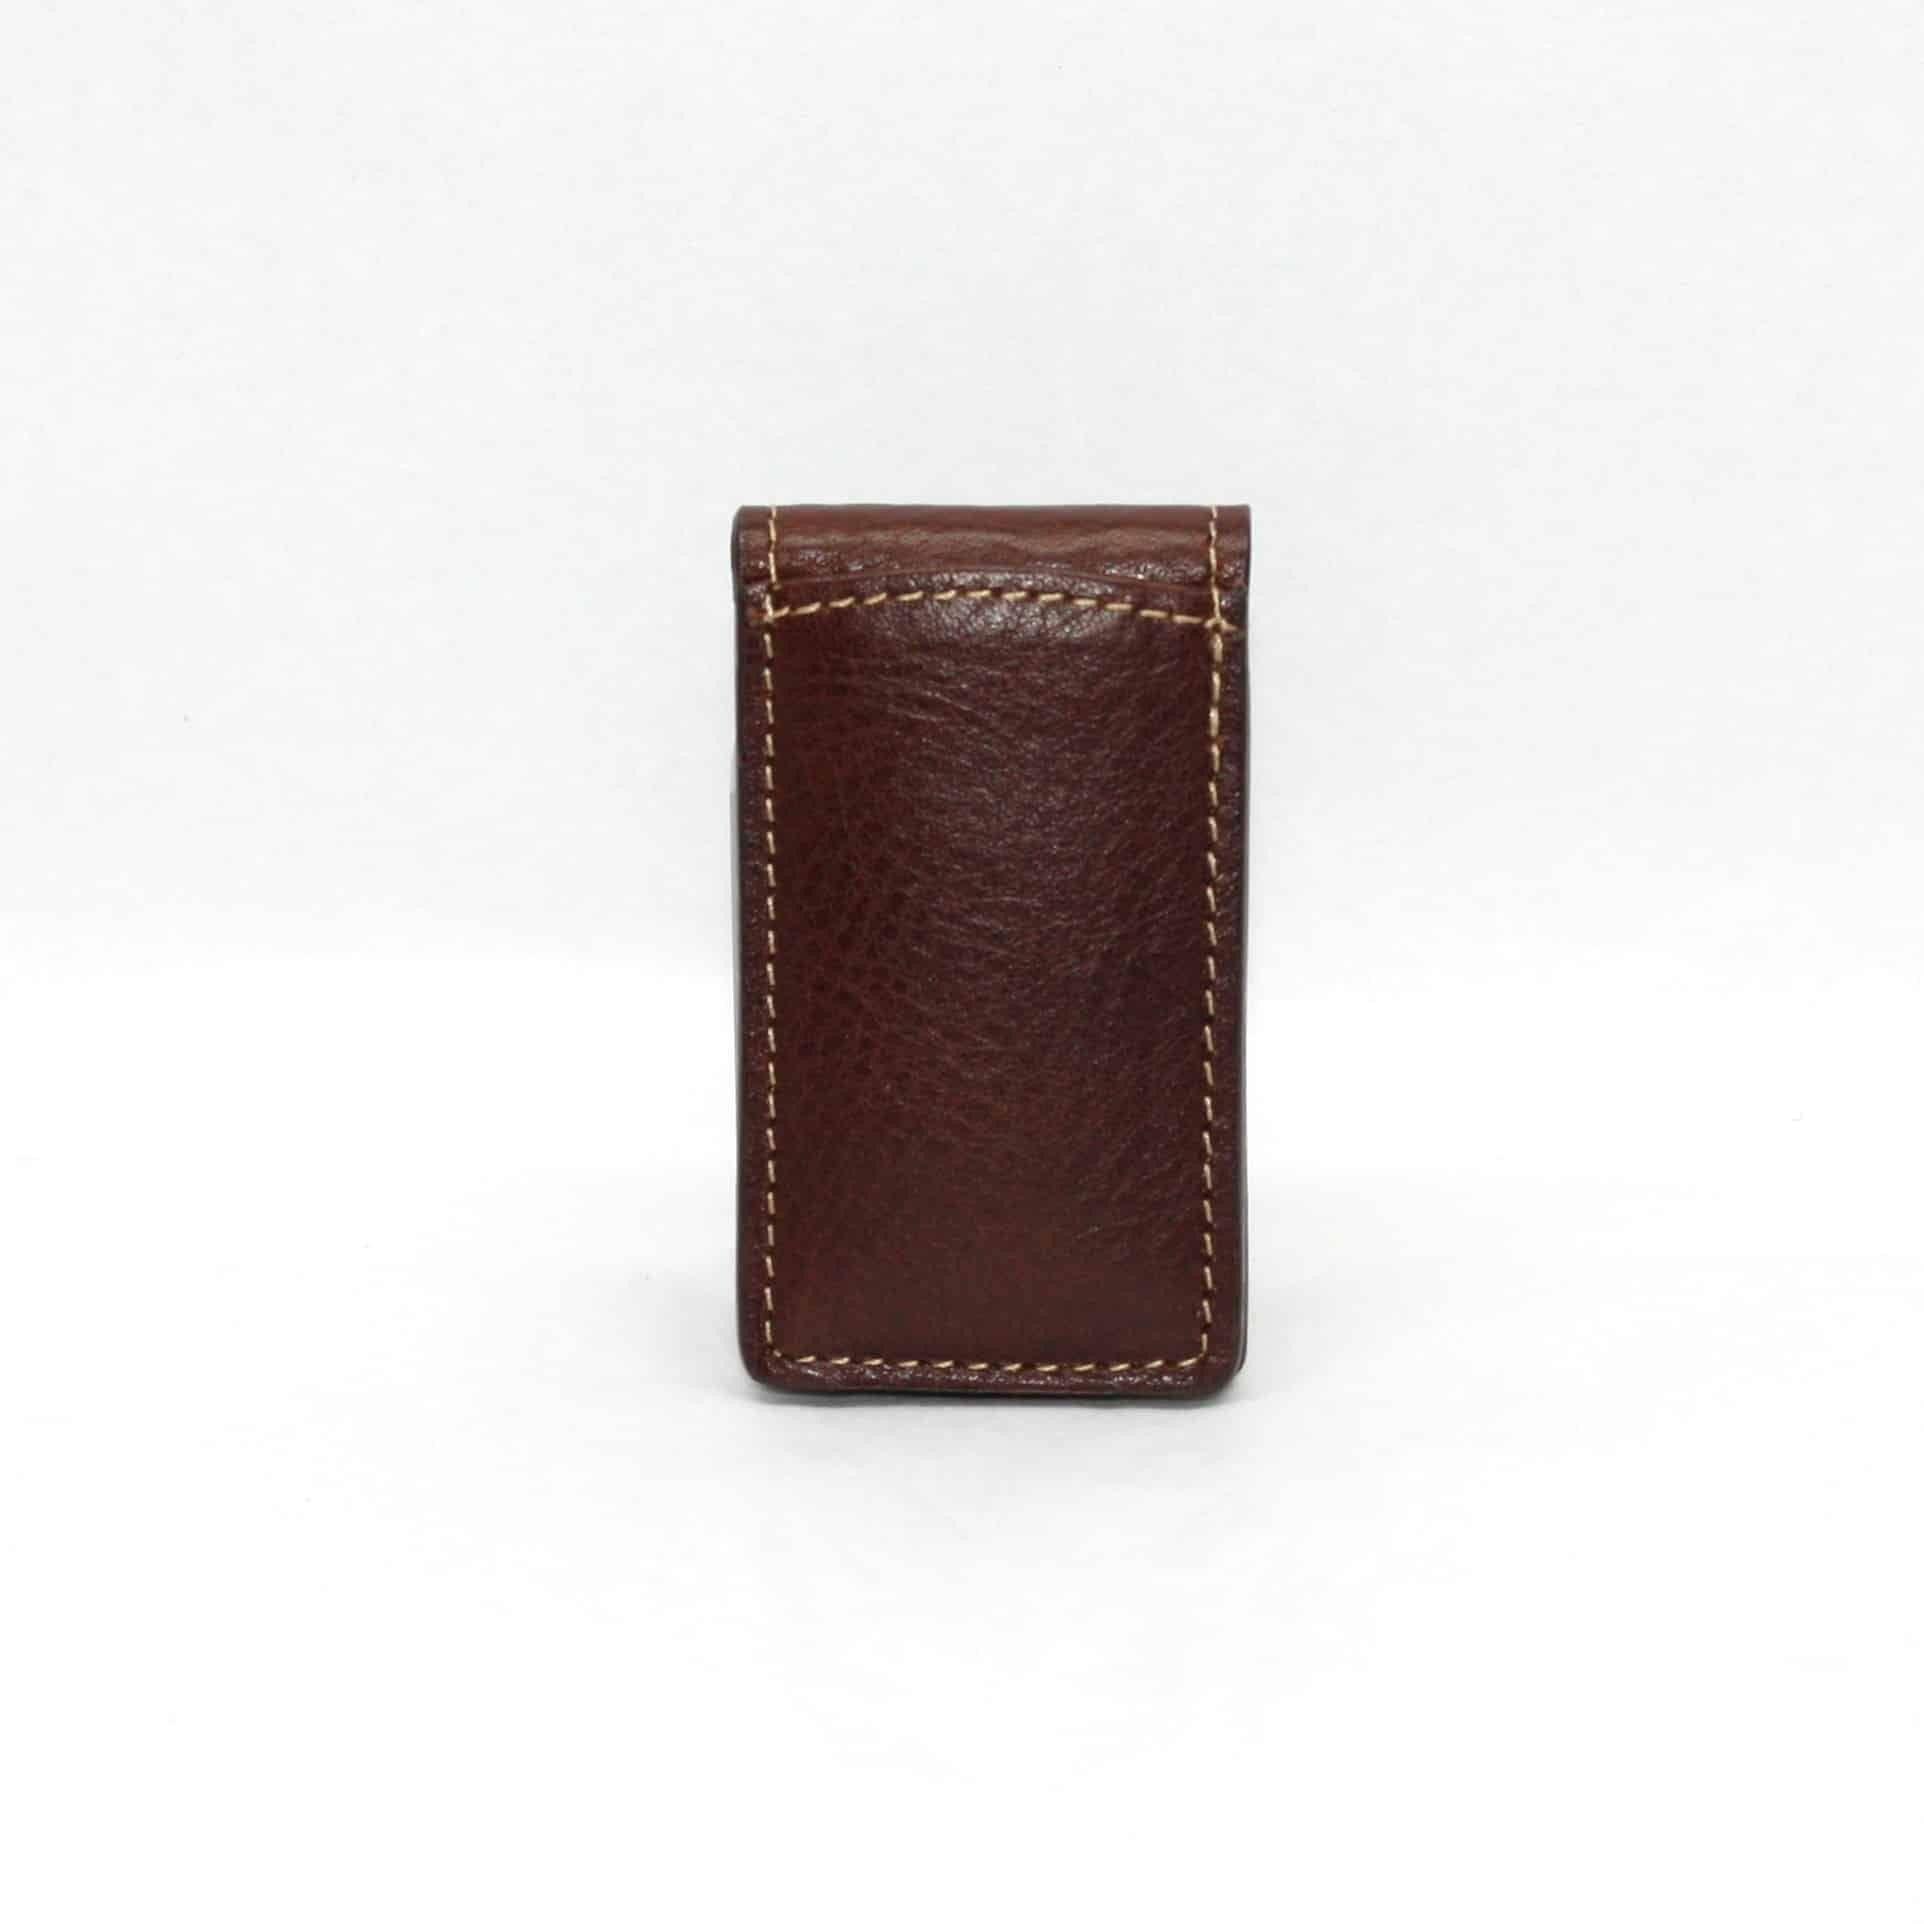 Tumbled Glove Magnetic Money Clip - Brown,WALLETS,GentRow.com, | GentRow.com